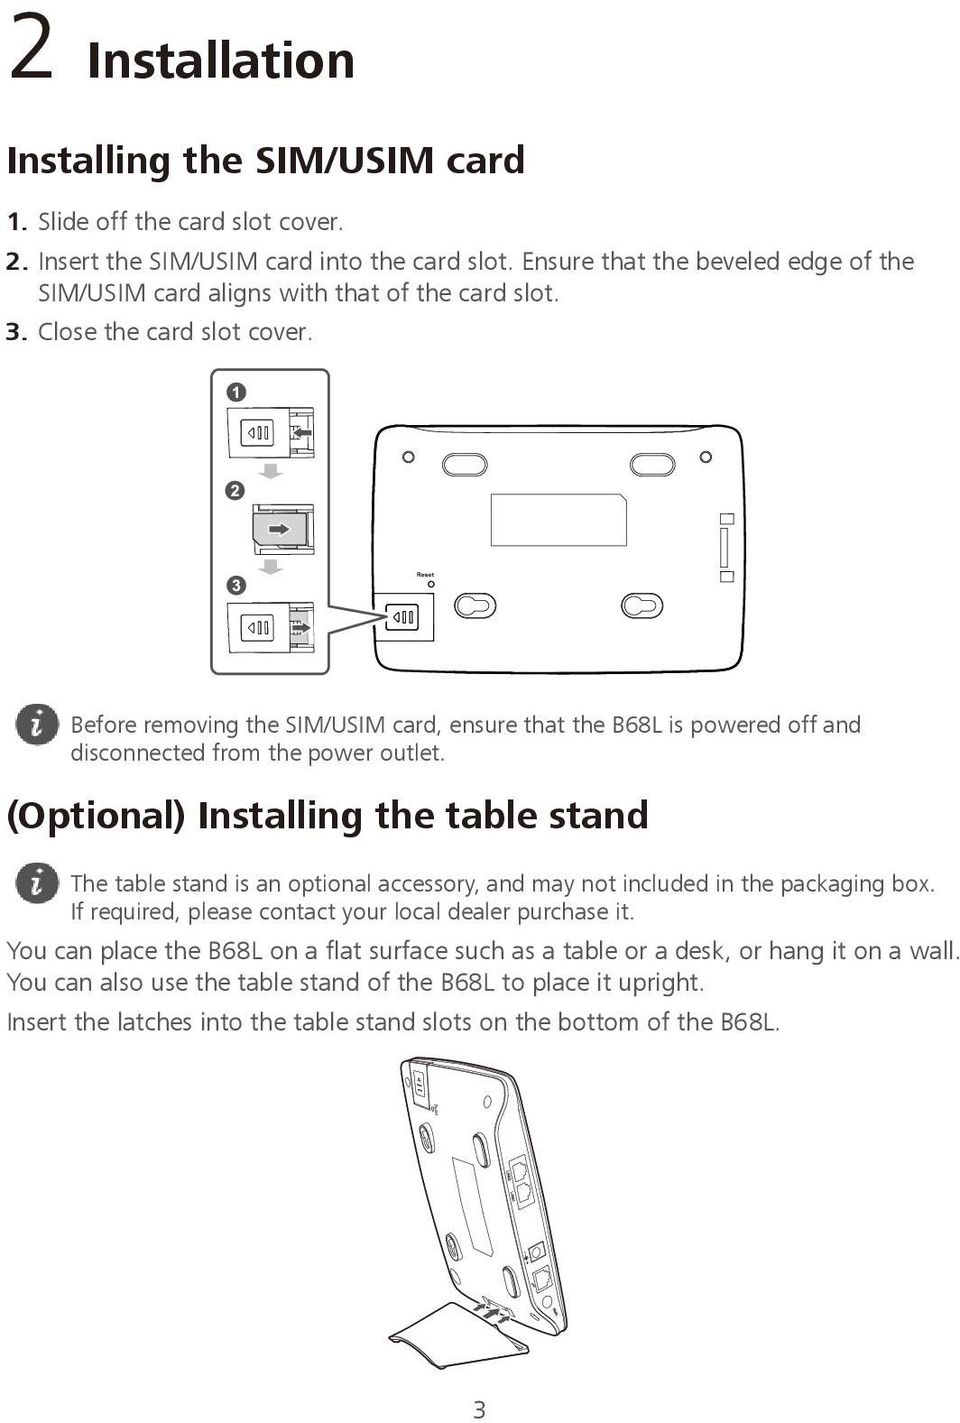 Before removing the SIM/USIM card, ensure that the B68L is powered off and disconnected from the power outlet.